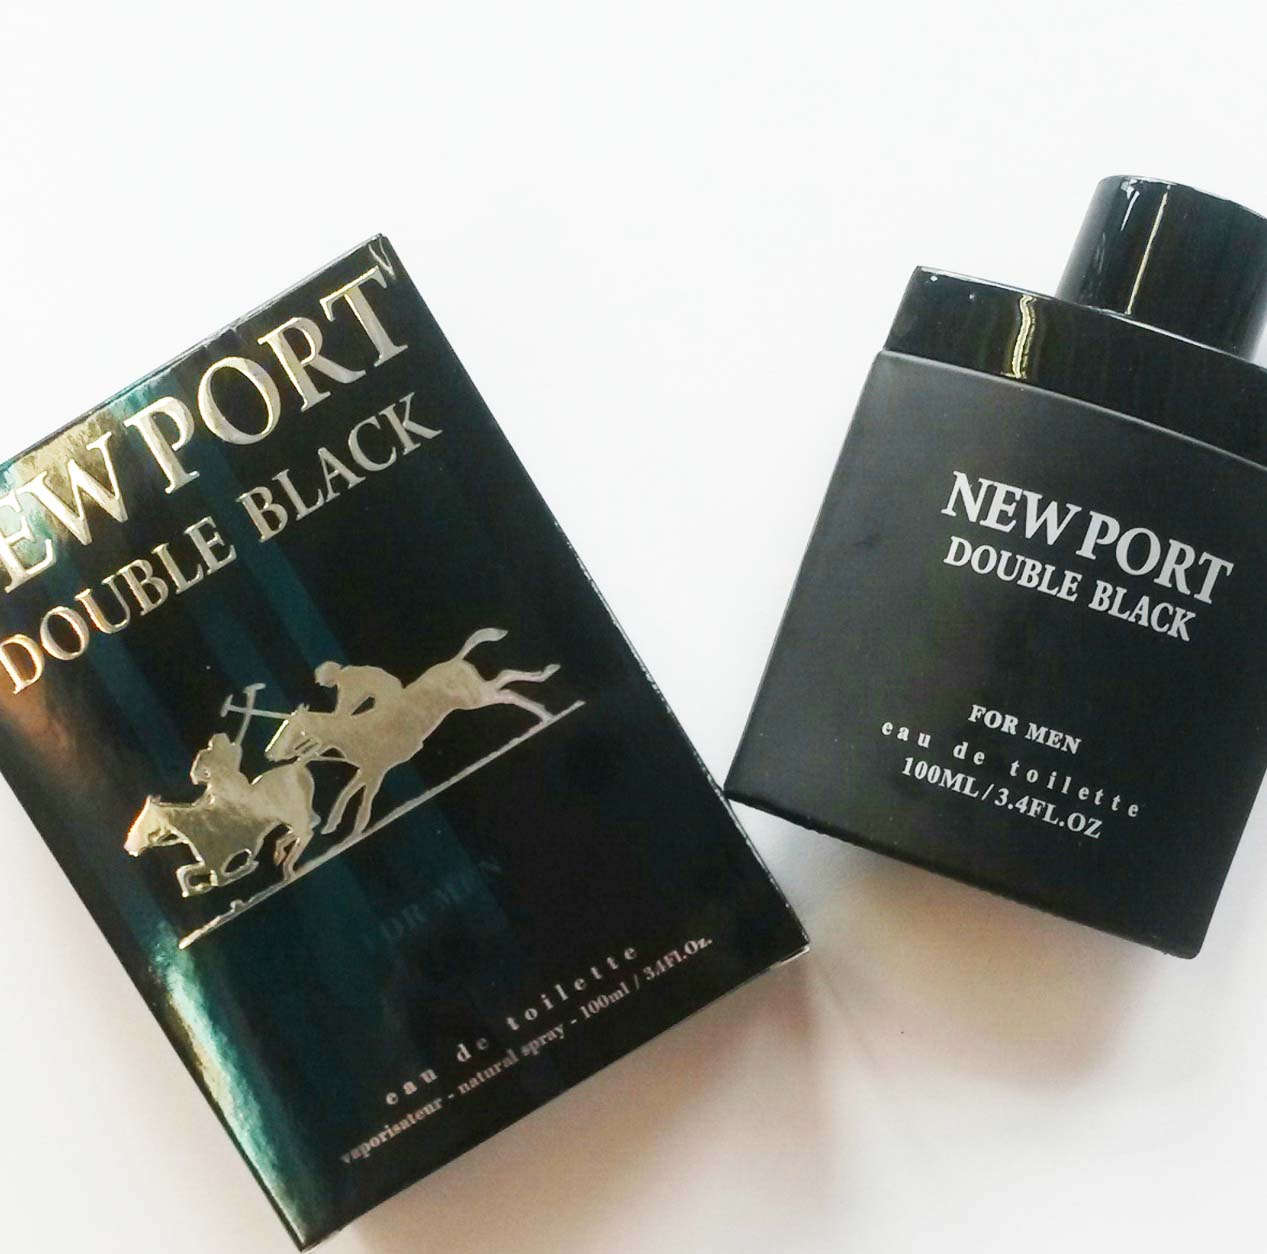 New Port Double Black